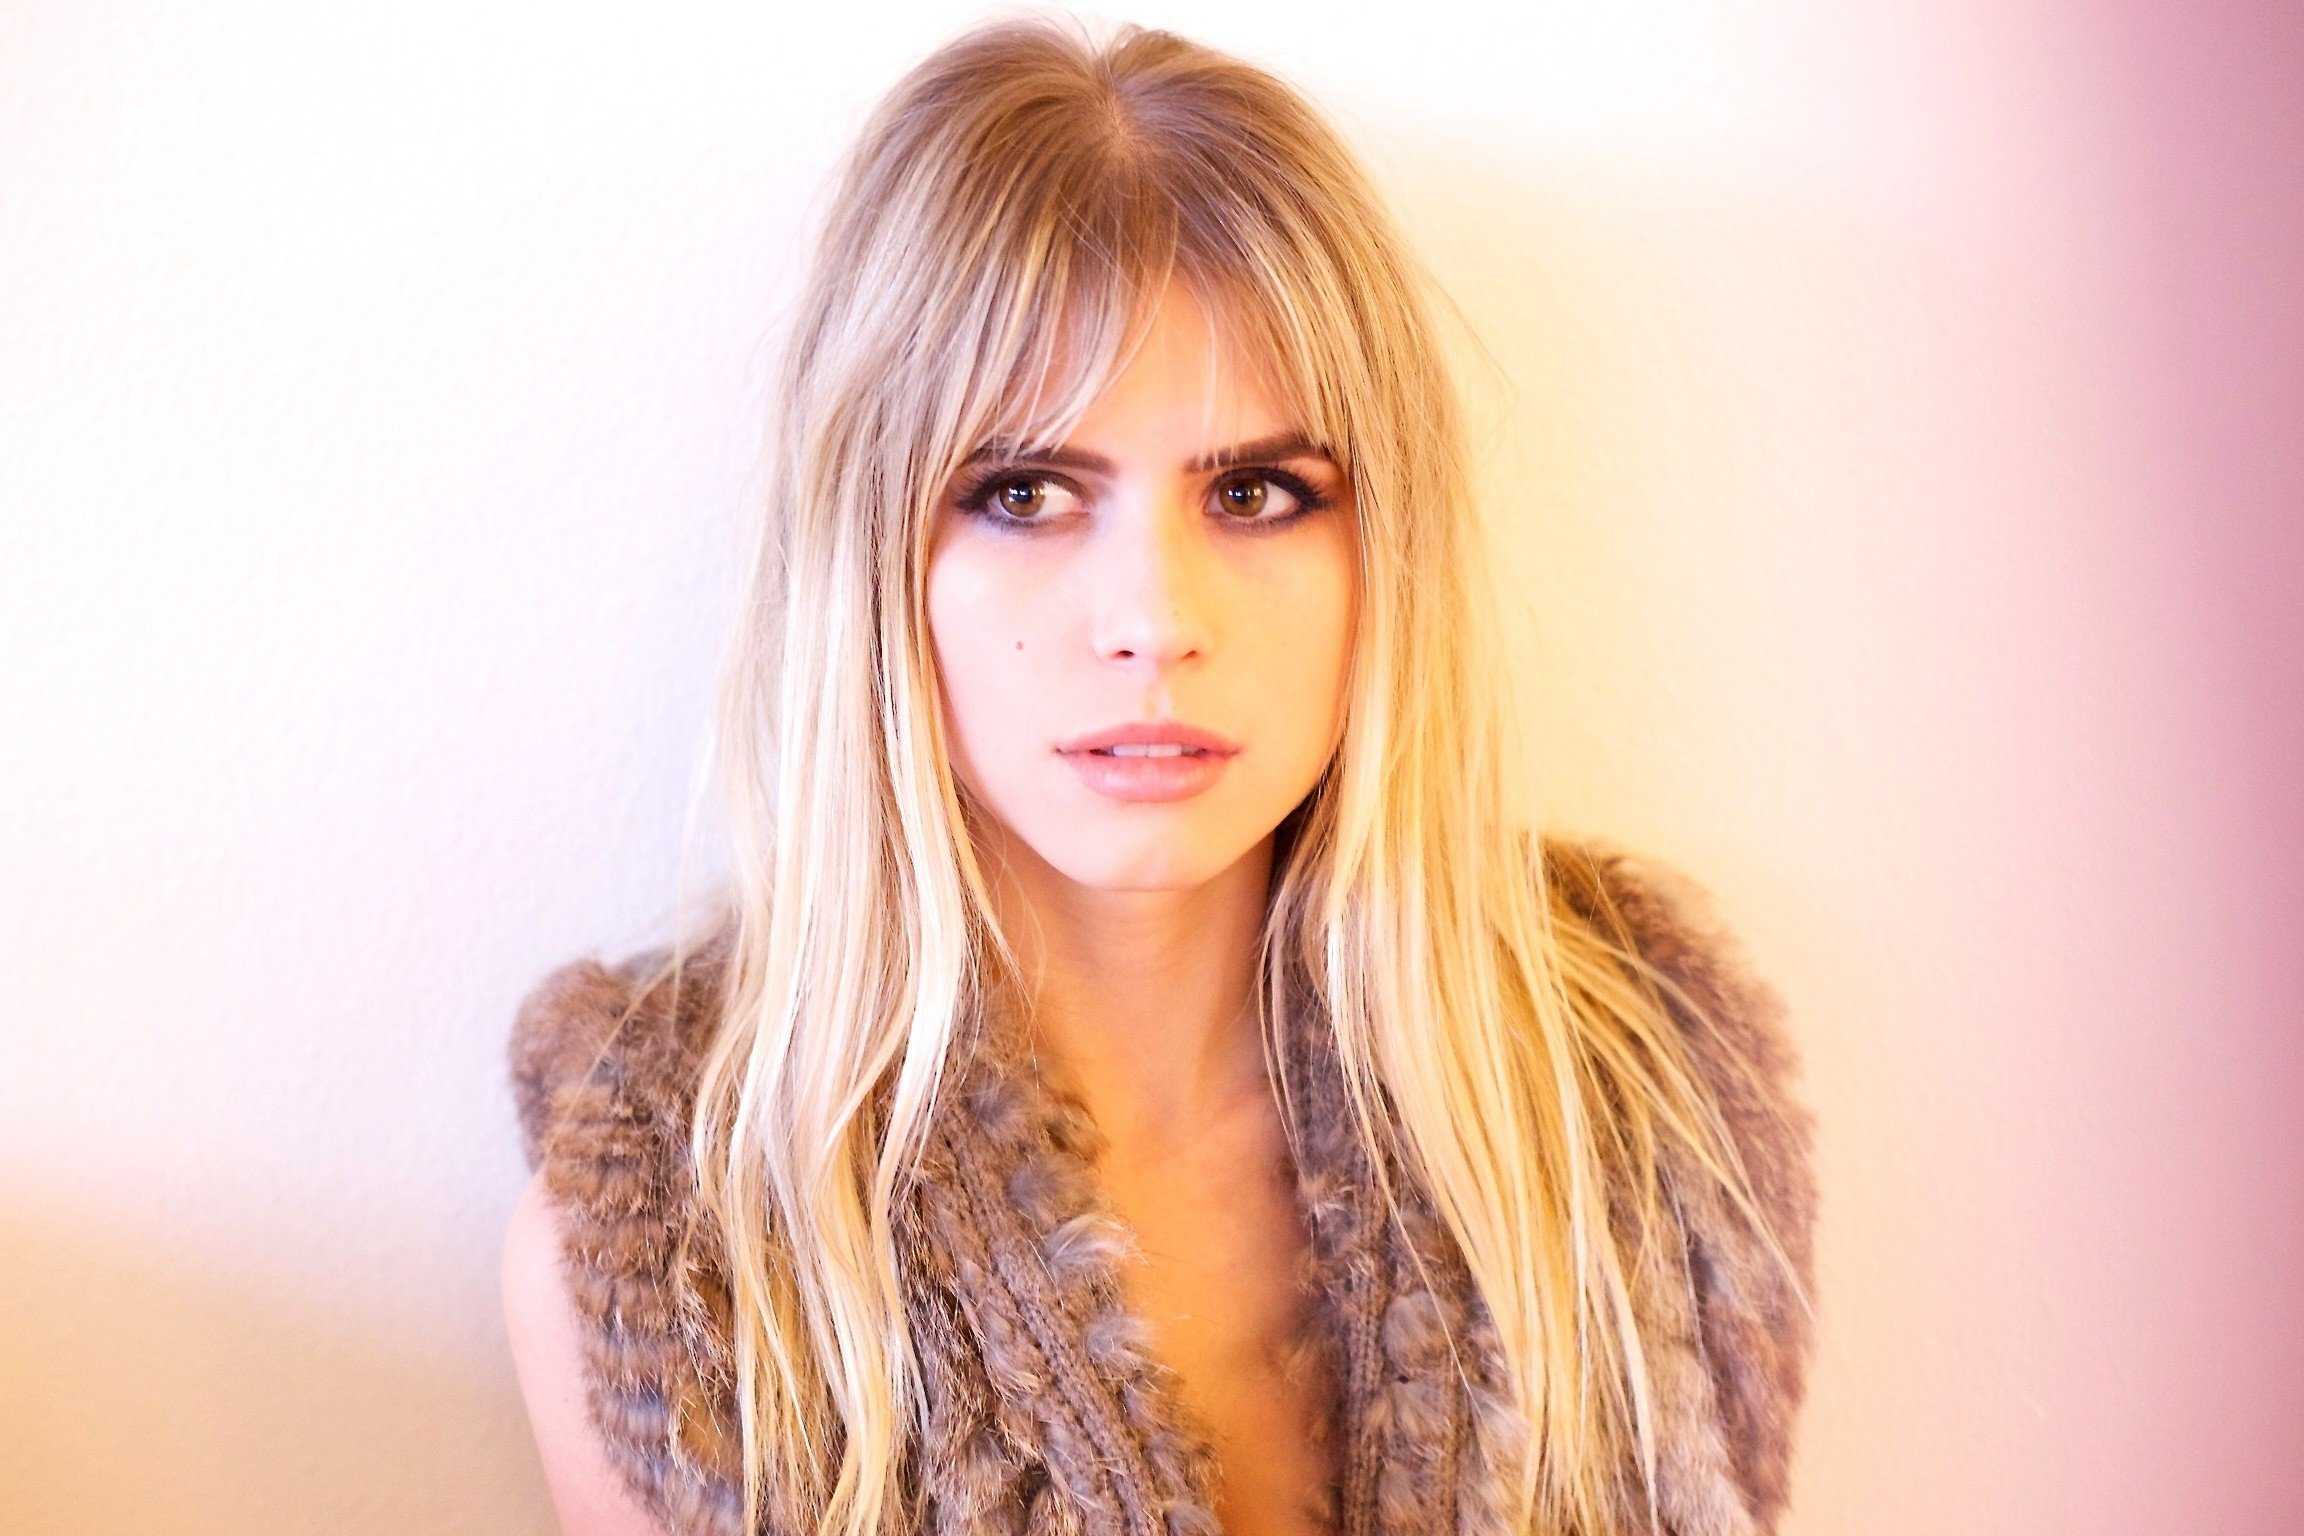 women Blonde Looking Away Face Carlson Young Actress 2304x1536